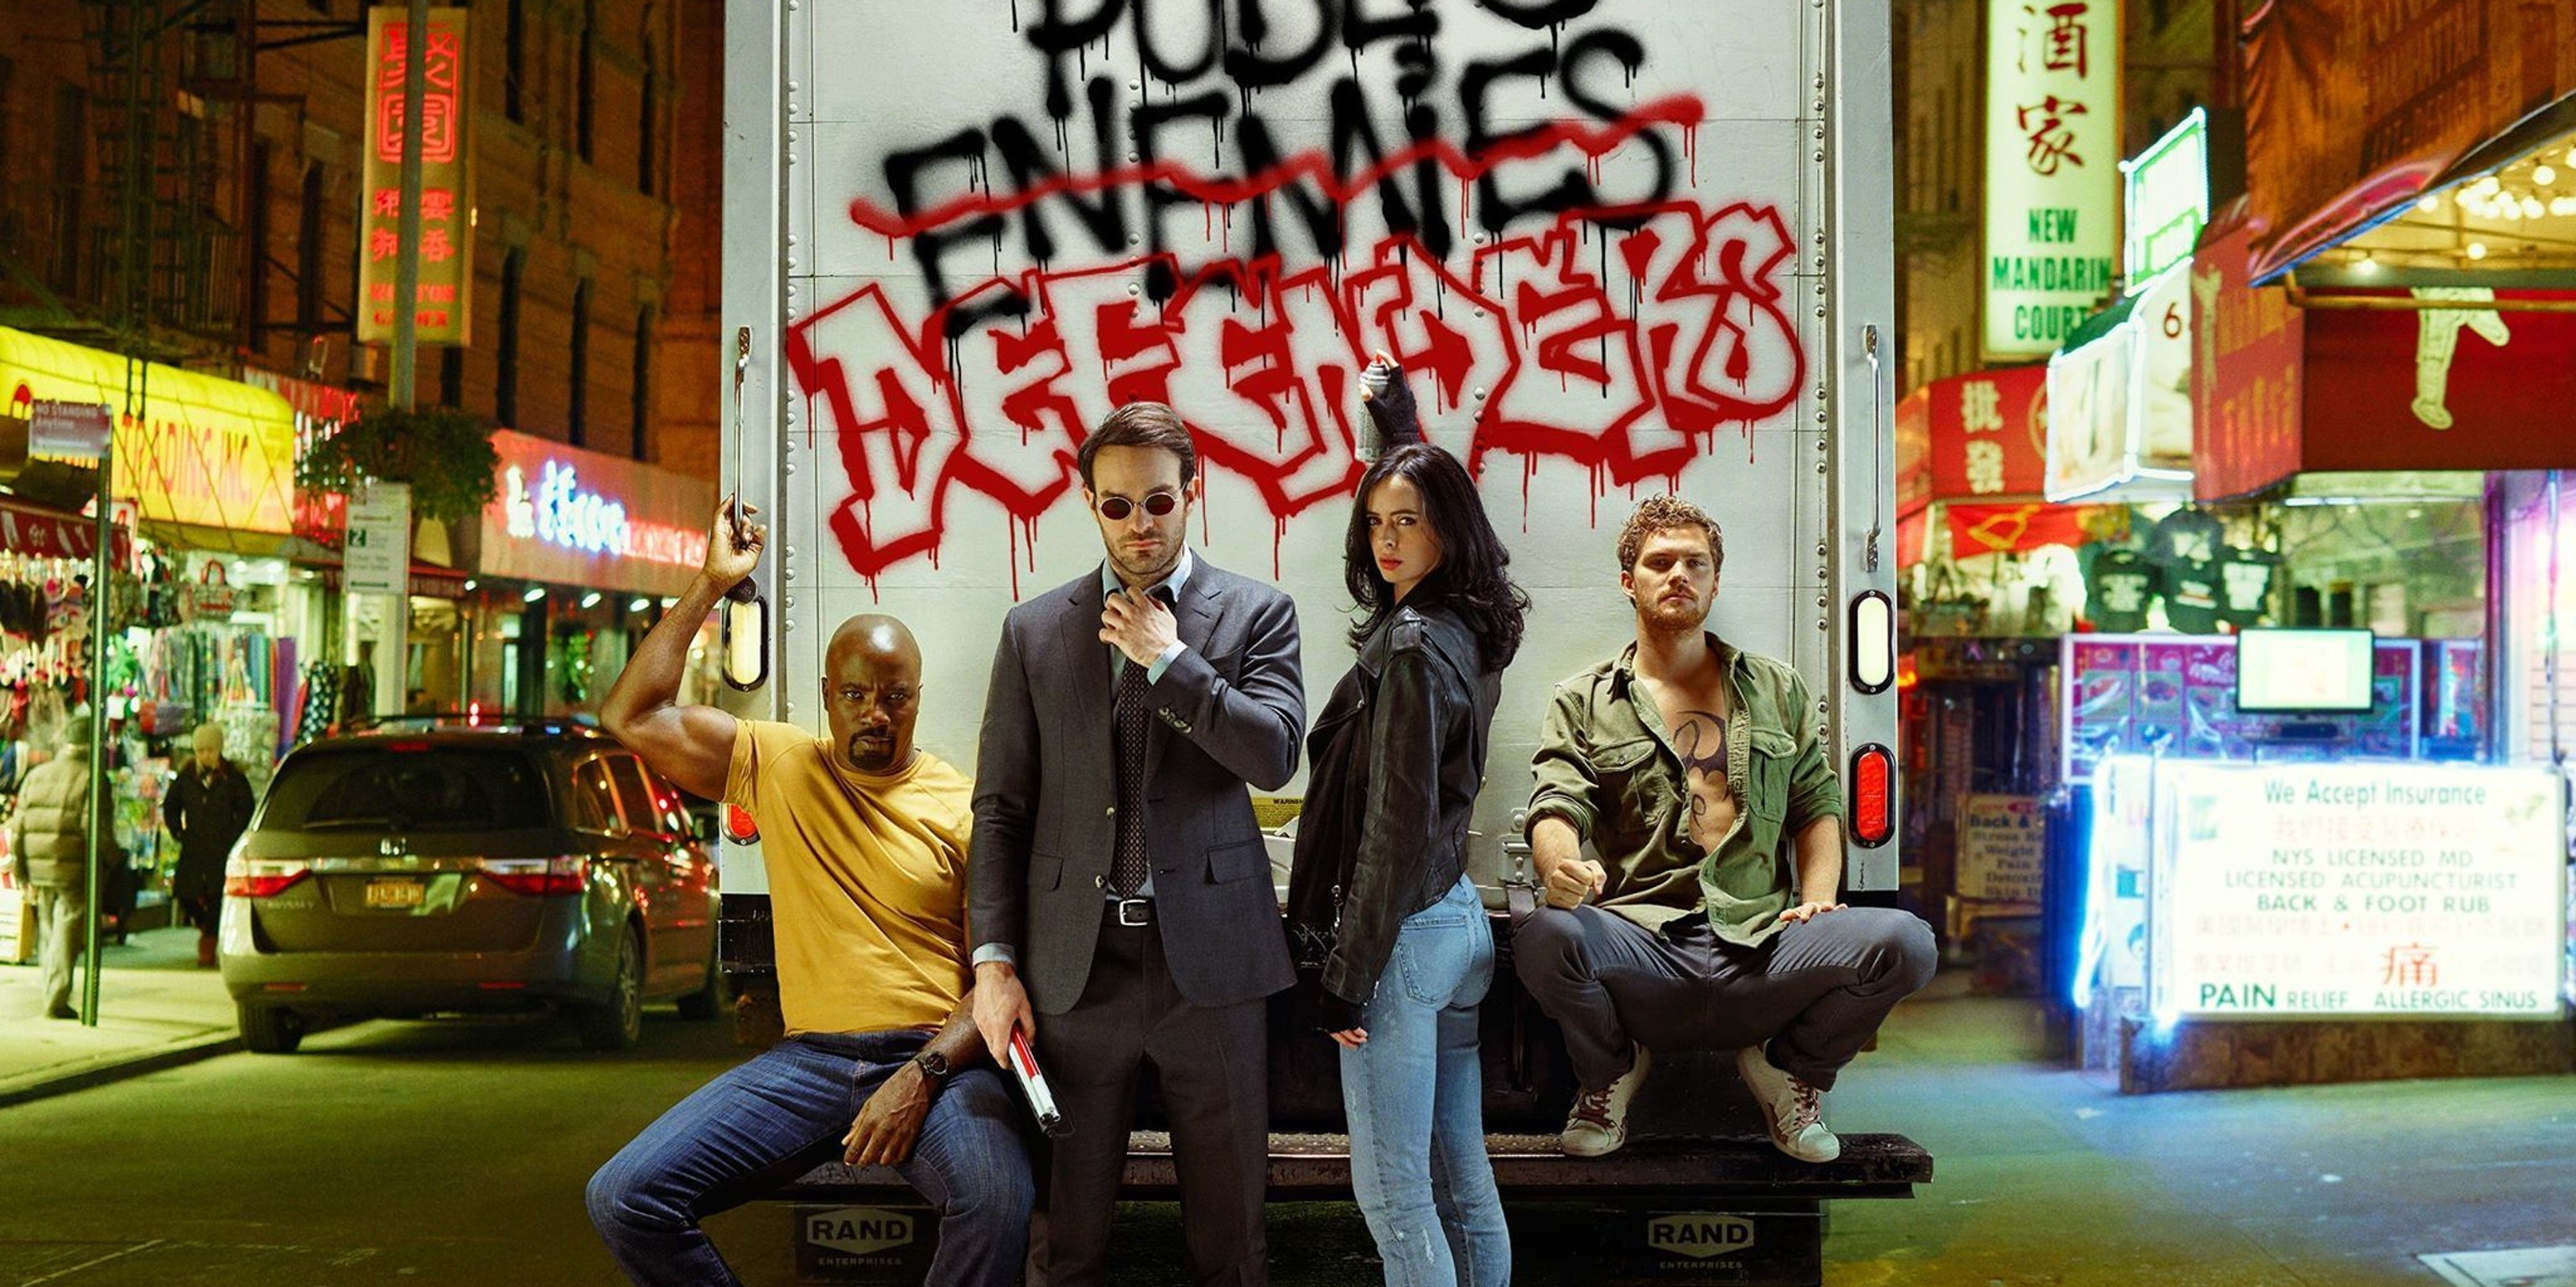 Daredevil, Jessica Jones, Luke Cage, and Iron Fist for Entertainment Weekly's Marvel Defenders cover